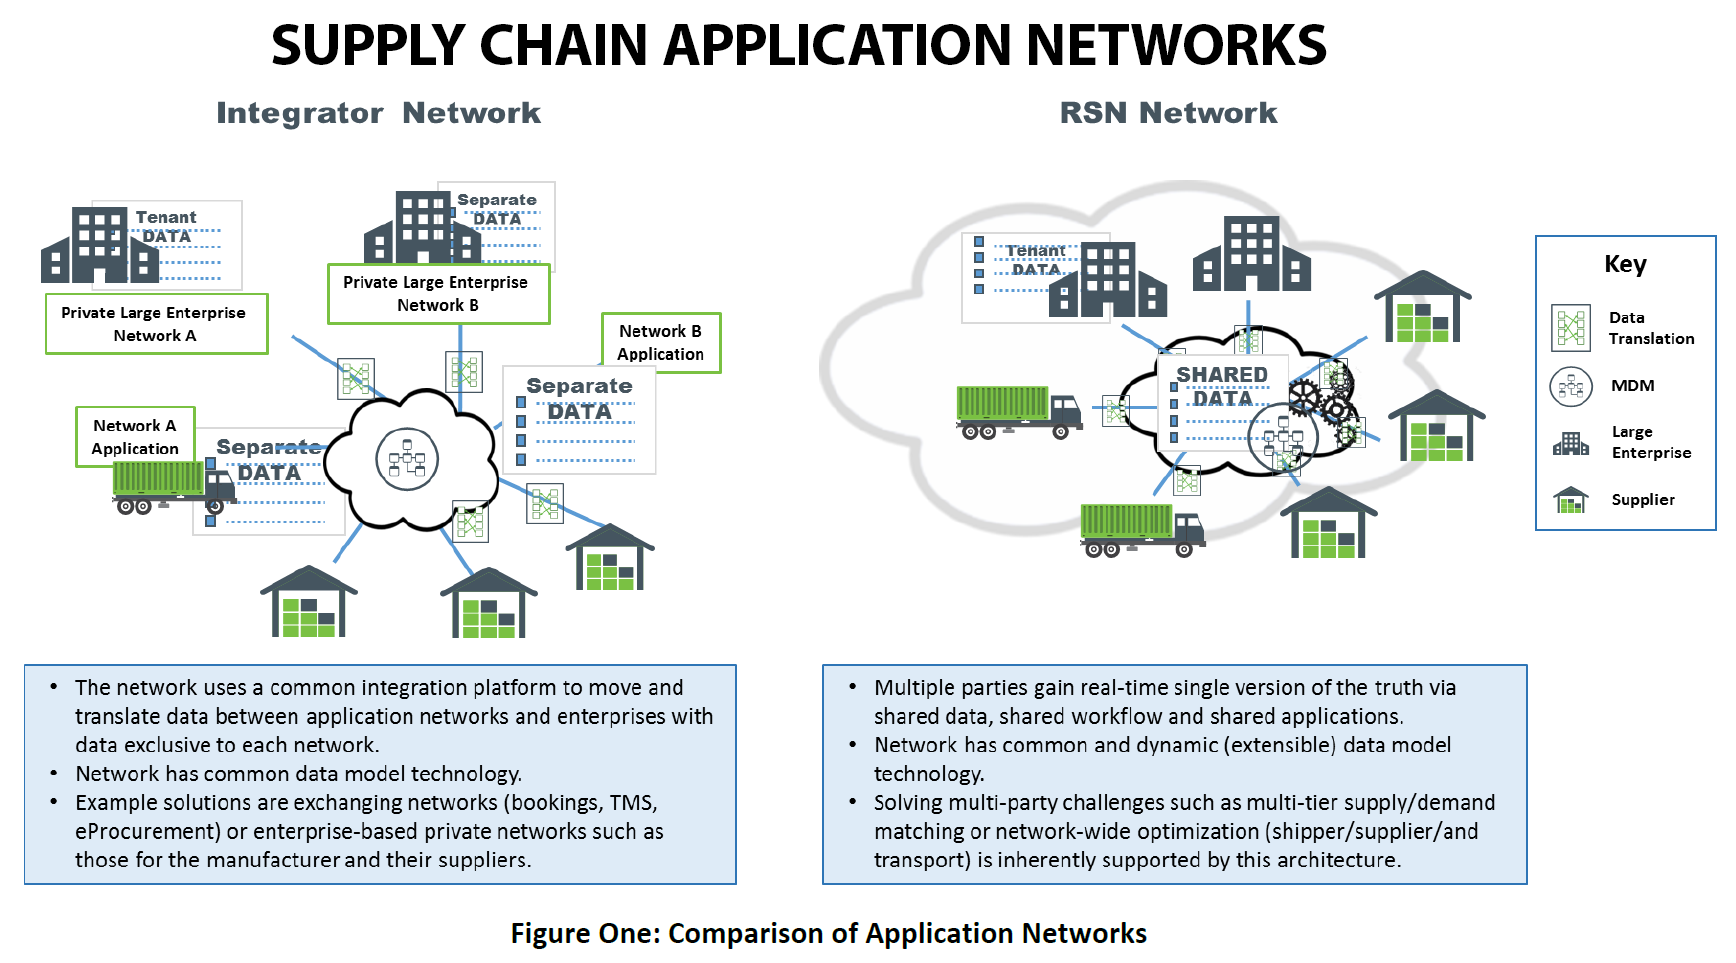 Supply Chain Application Networks